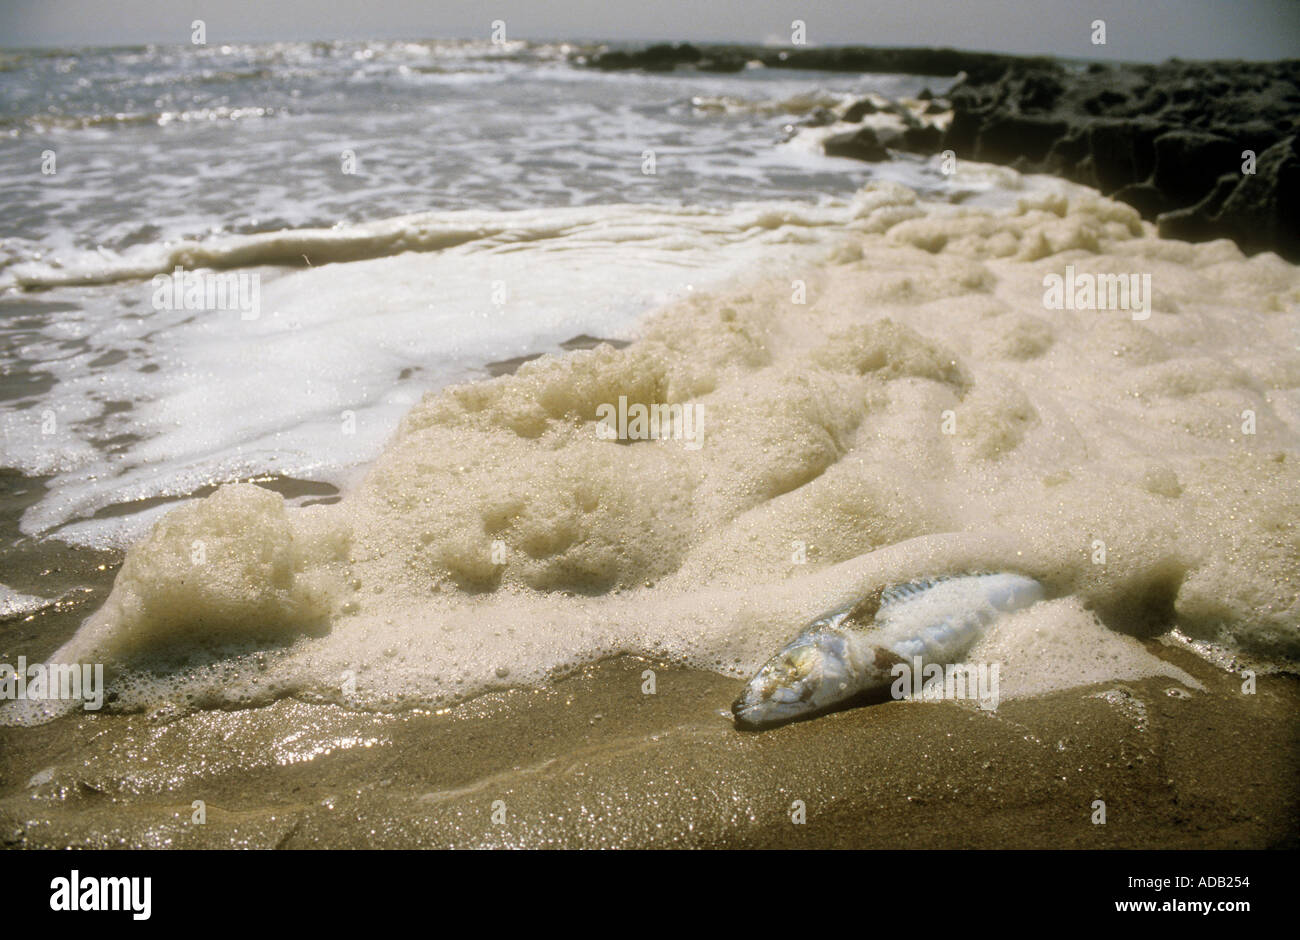 Protein scum pollution and dead fish on beach South Wales UK - Stock Image